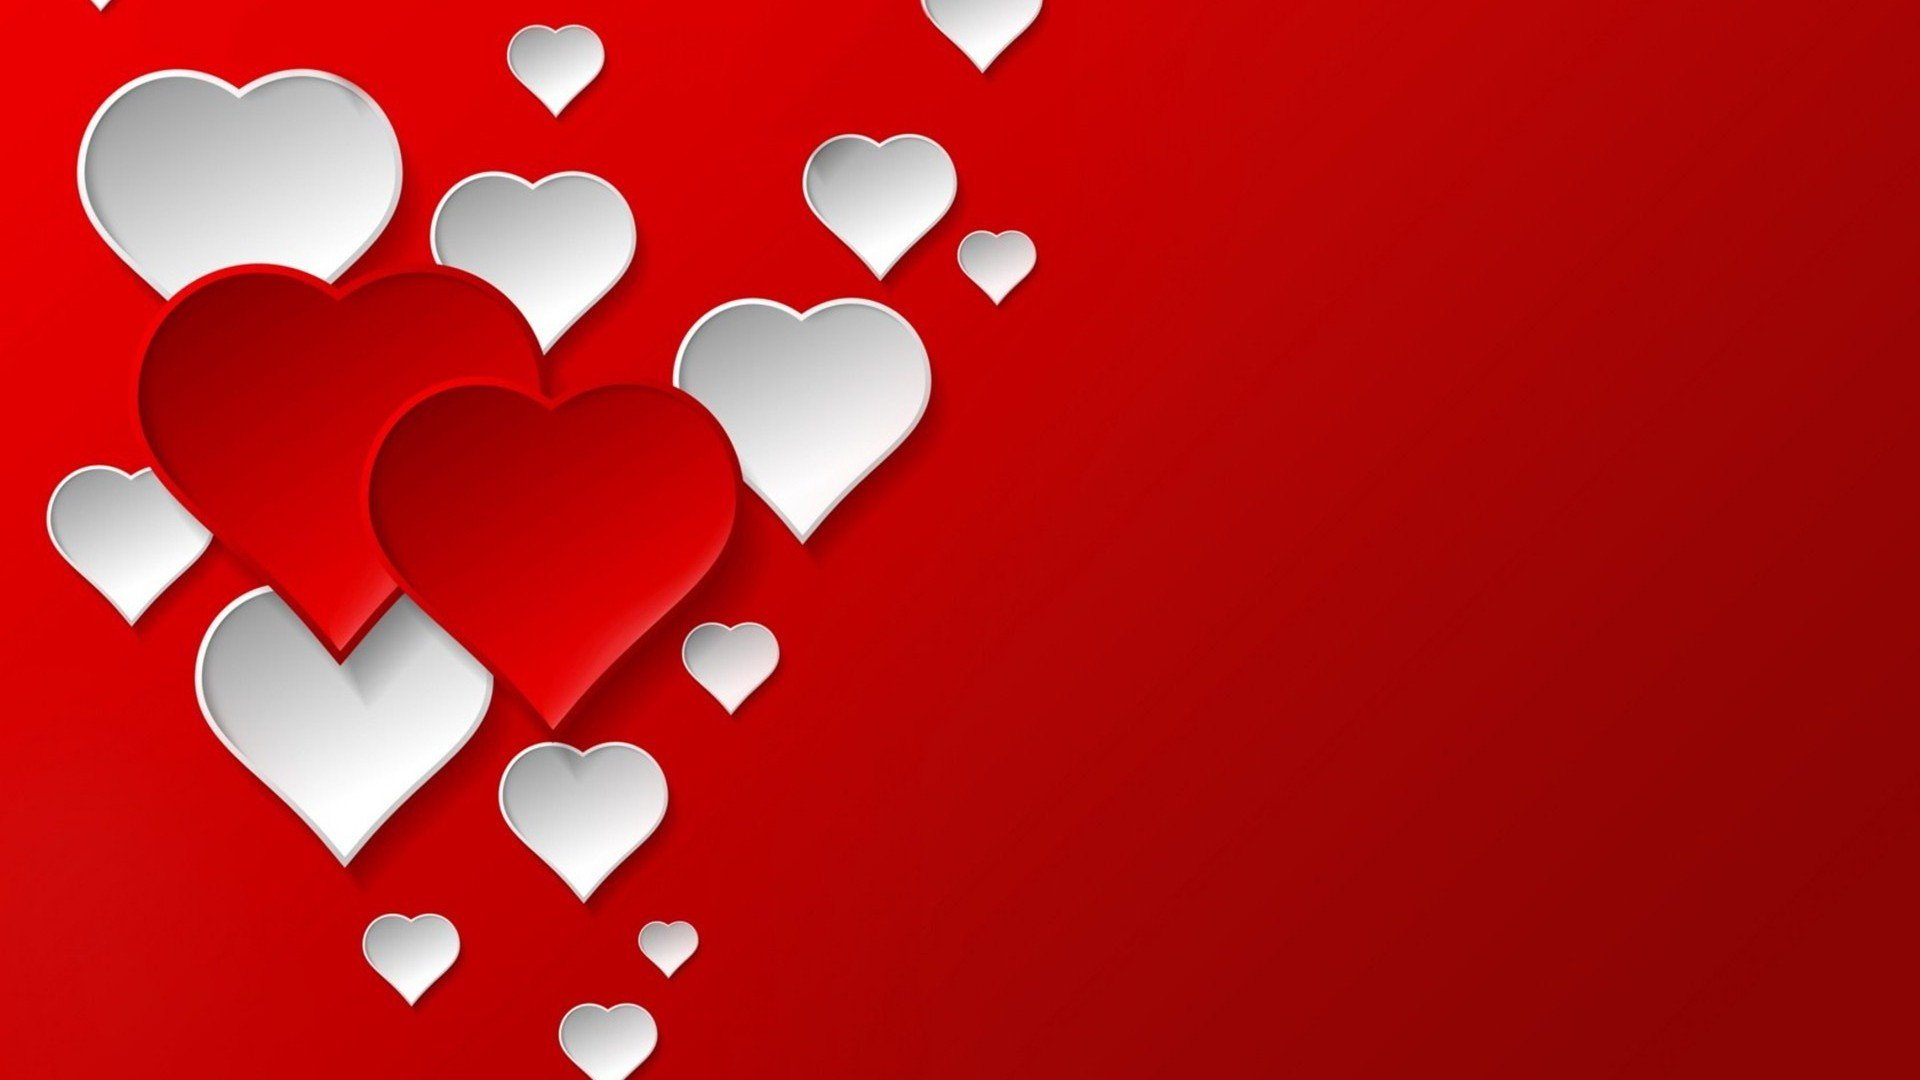 Valentine Hearts Wallpaper